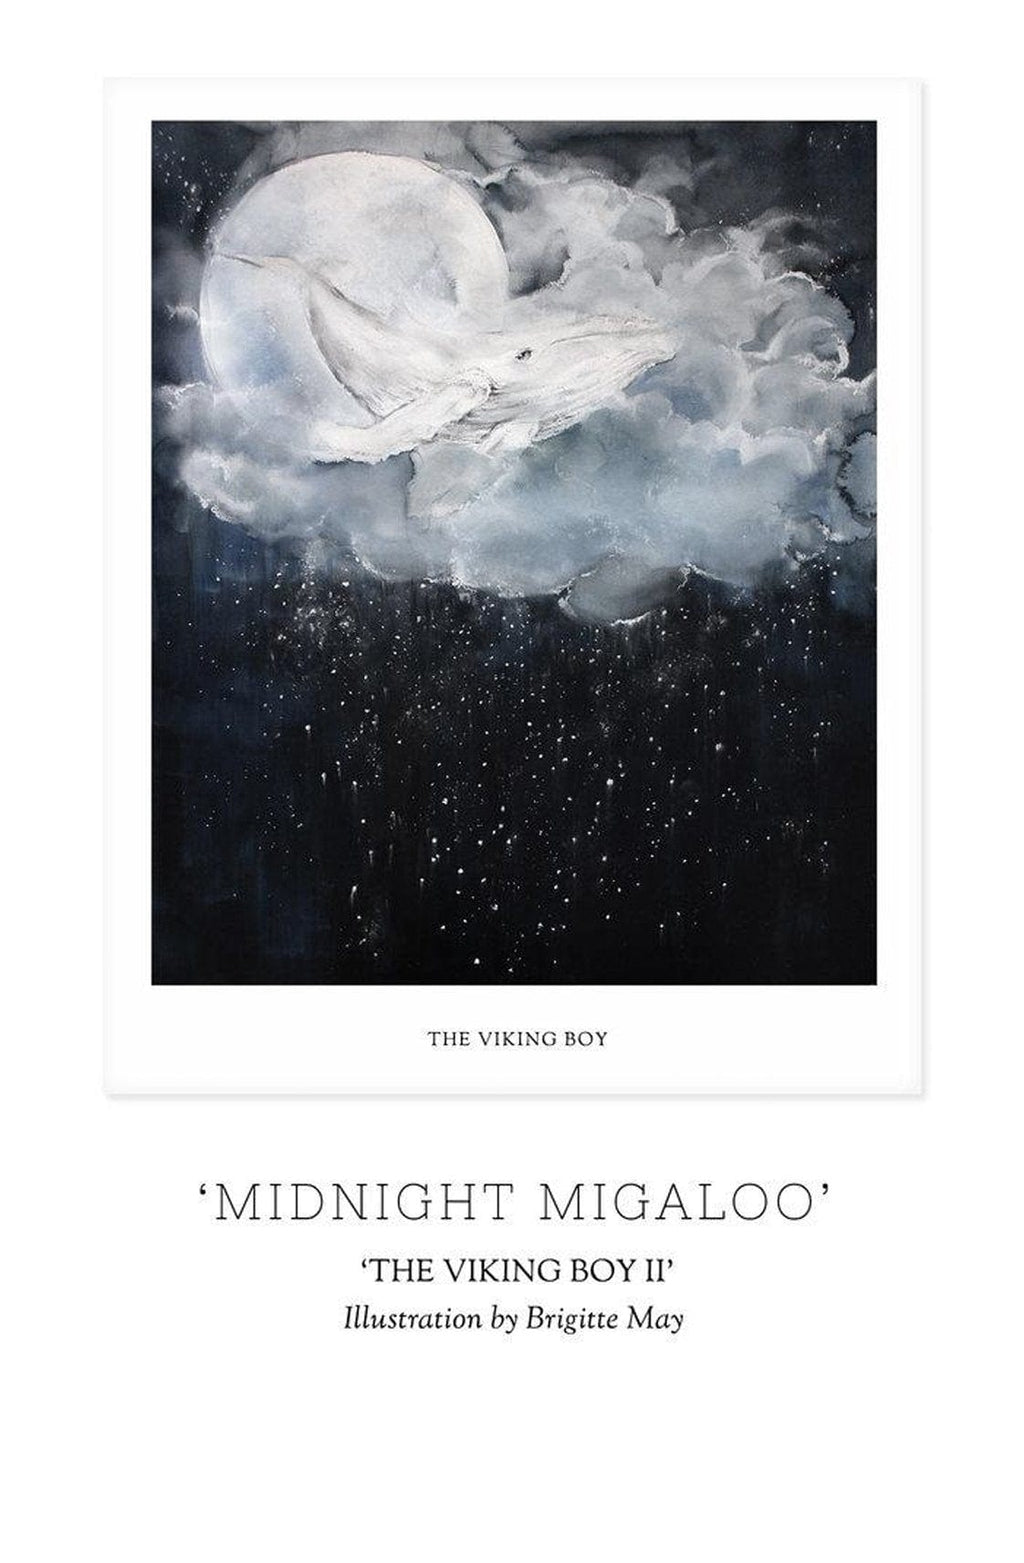 THE VIKING BOY, CHAPTER II - 'MOONLIGHT MIGALOO' Print